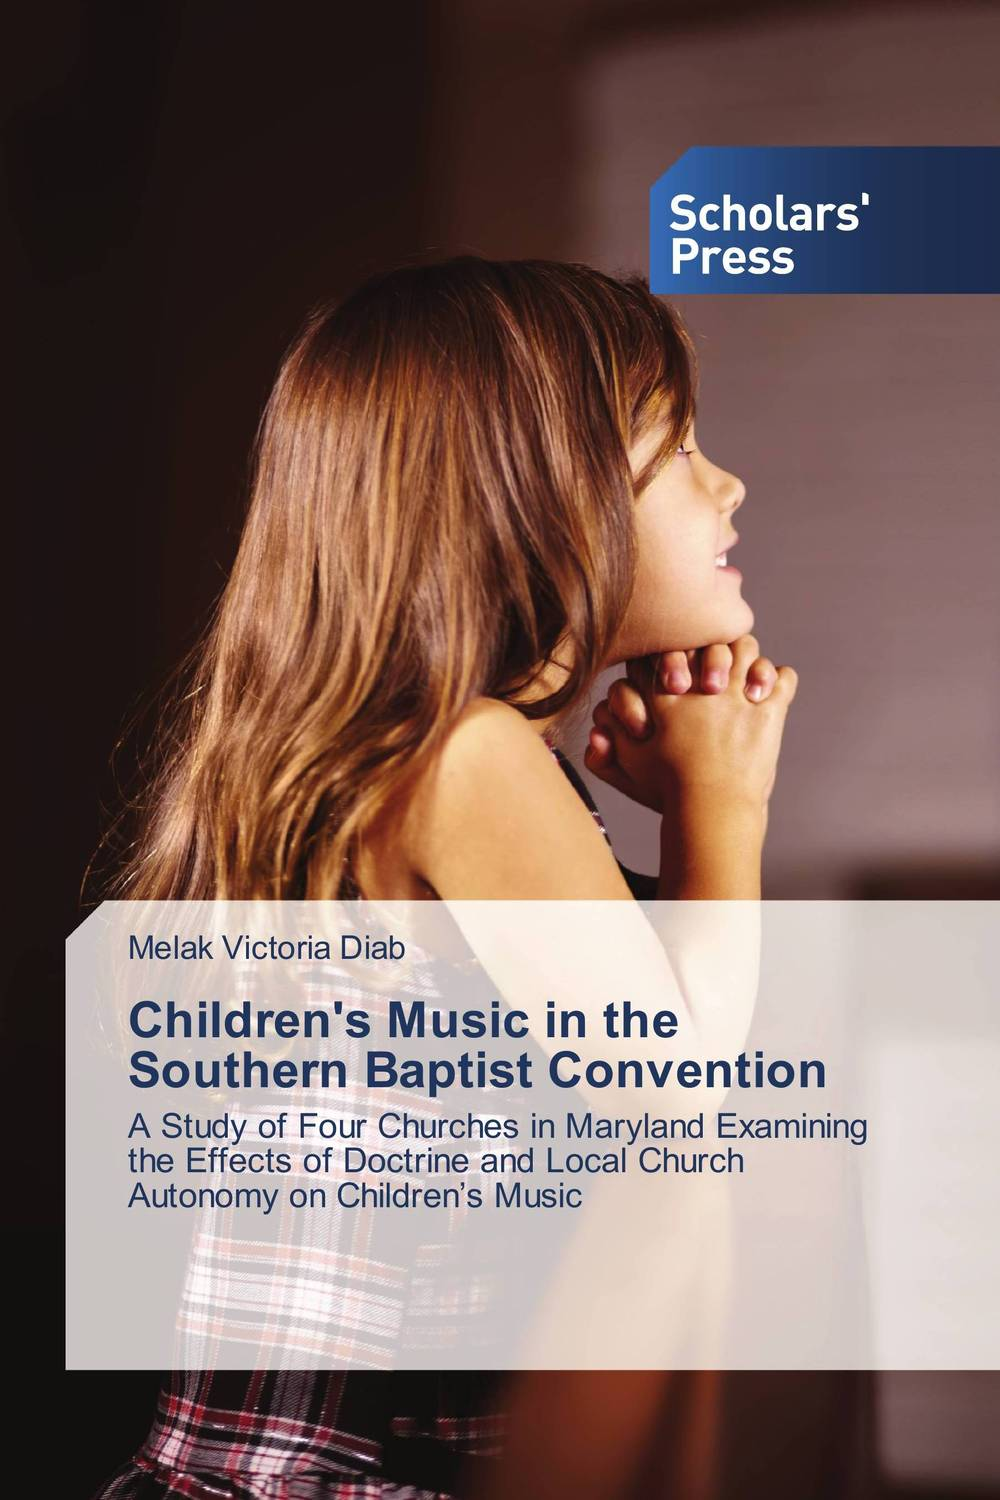 Children's Music in the Southern Baptist Convention